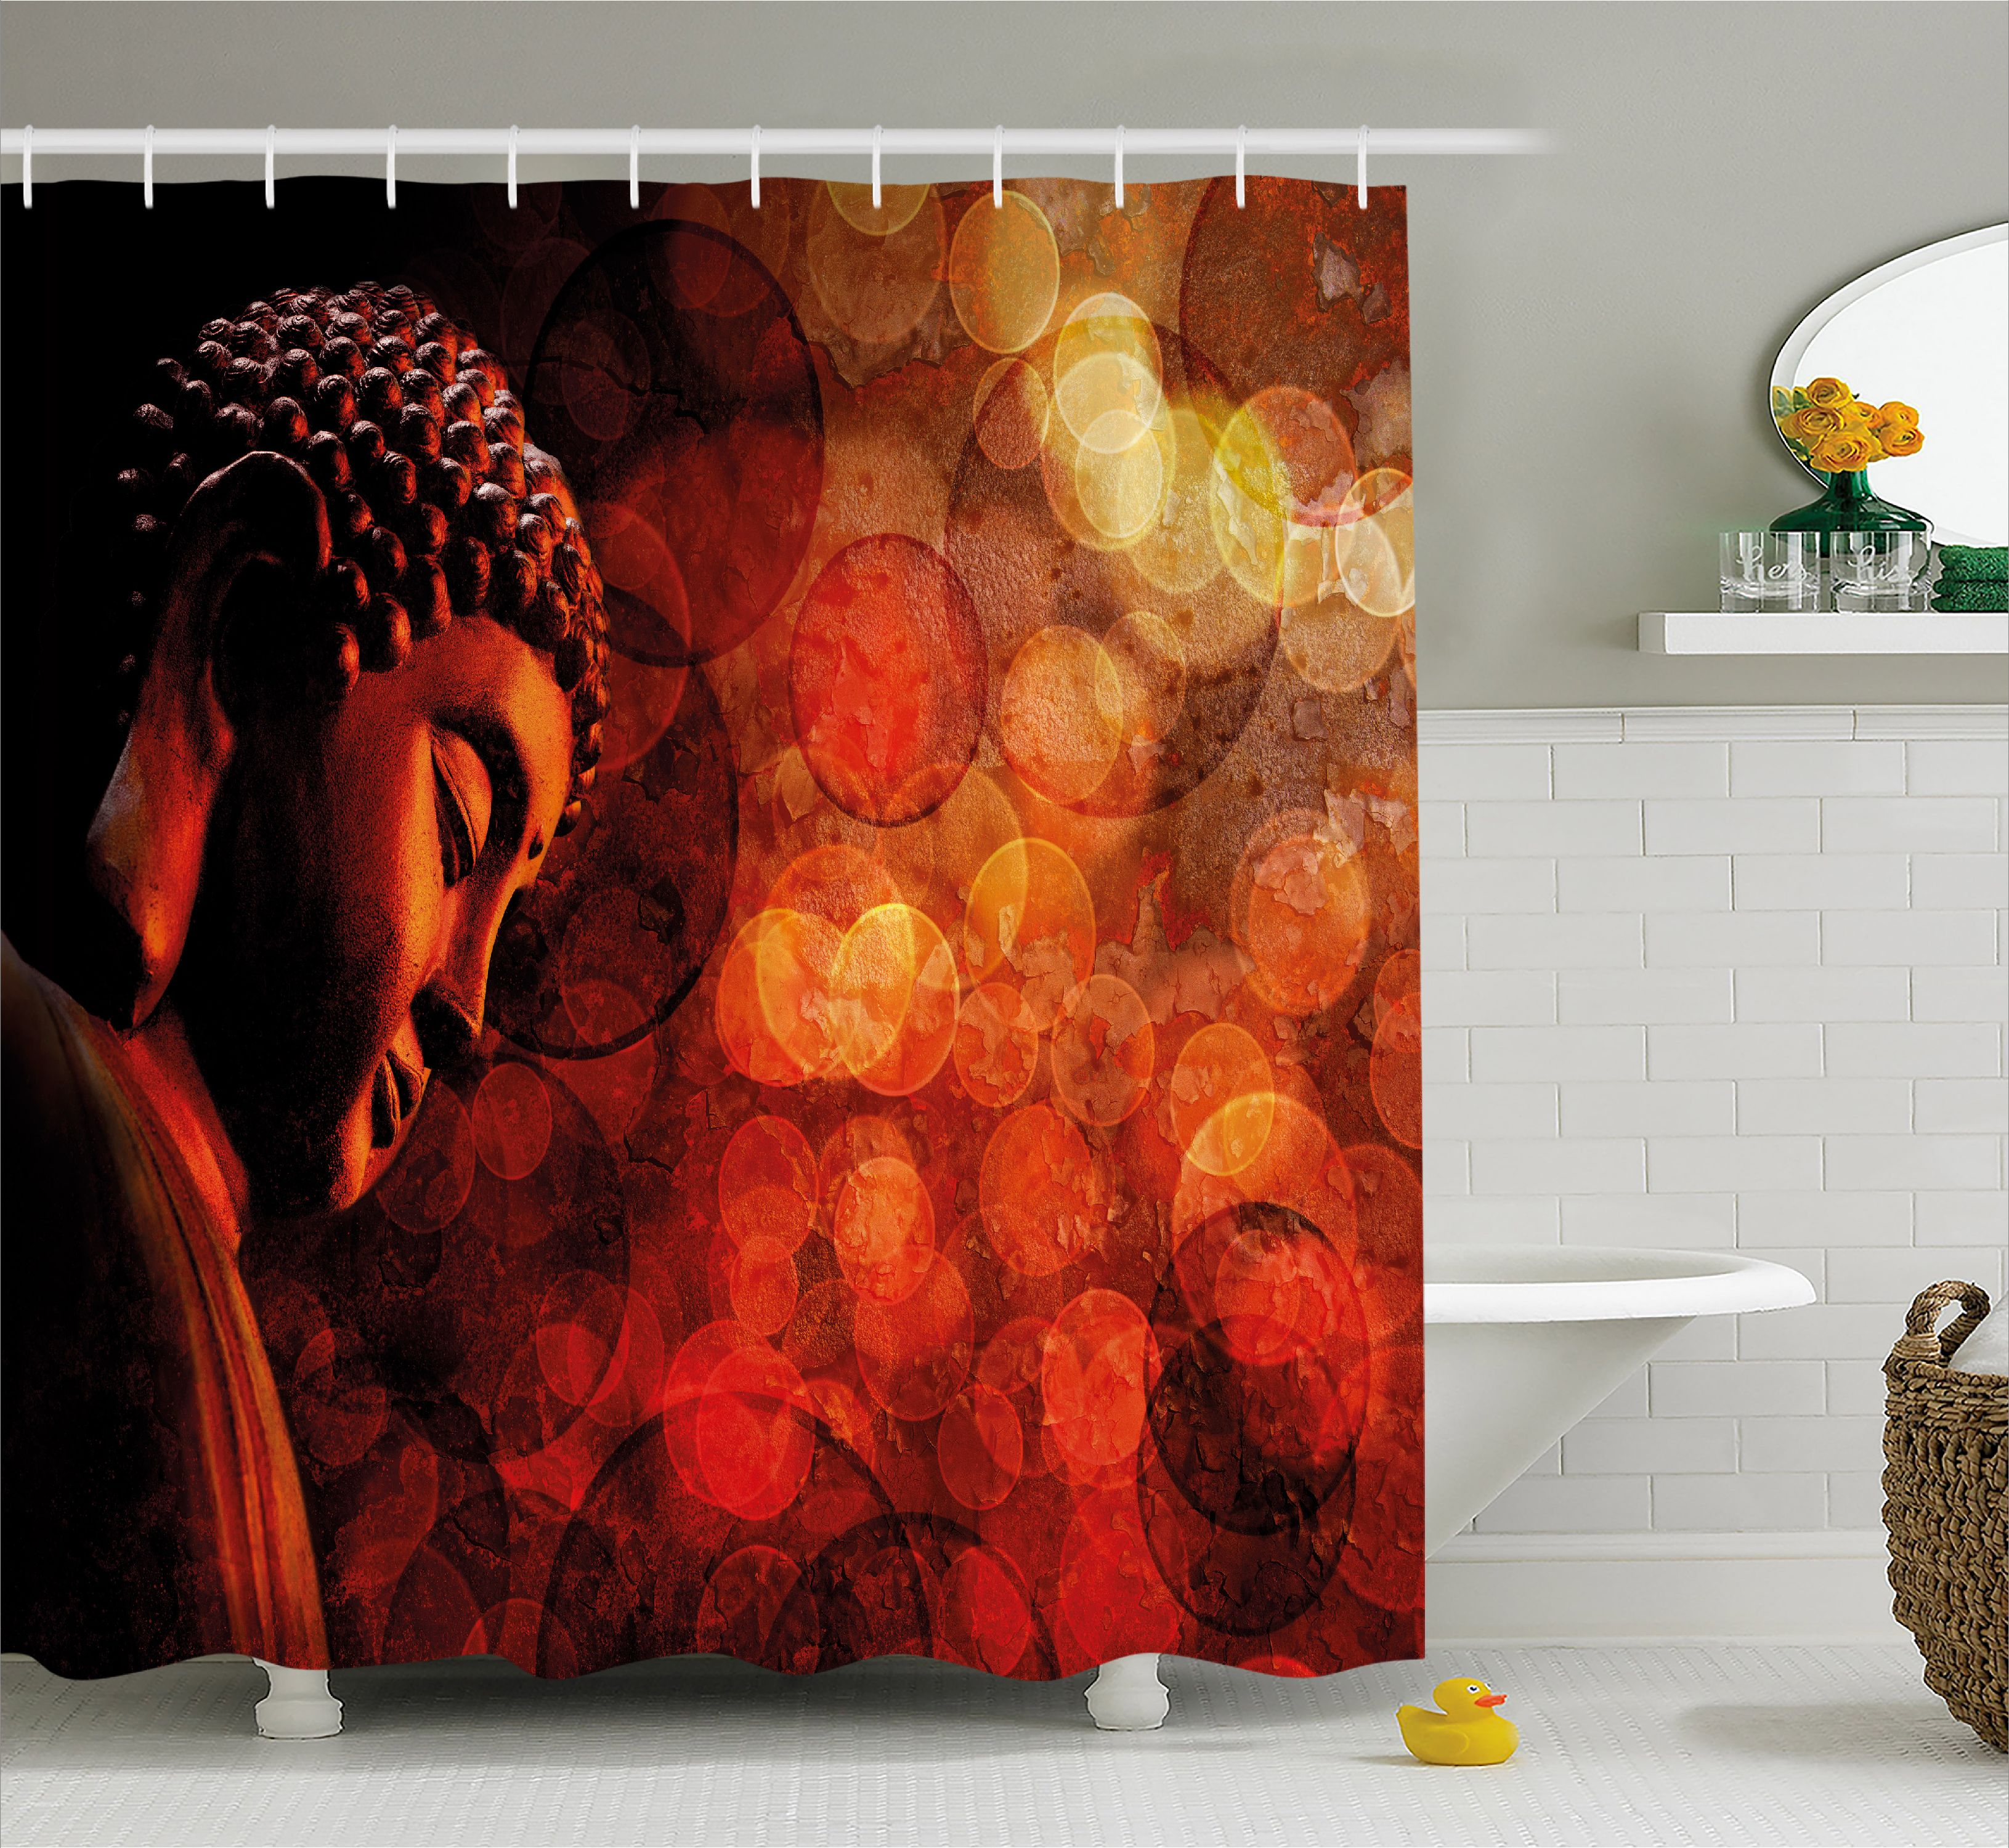 Zen Shower Curtain, Eastern Religious Figure Abstract Backdrop Asian  Ethnicity Meditation Peace, Fabric Bathroom